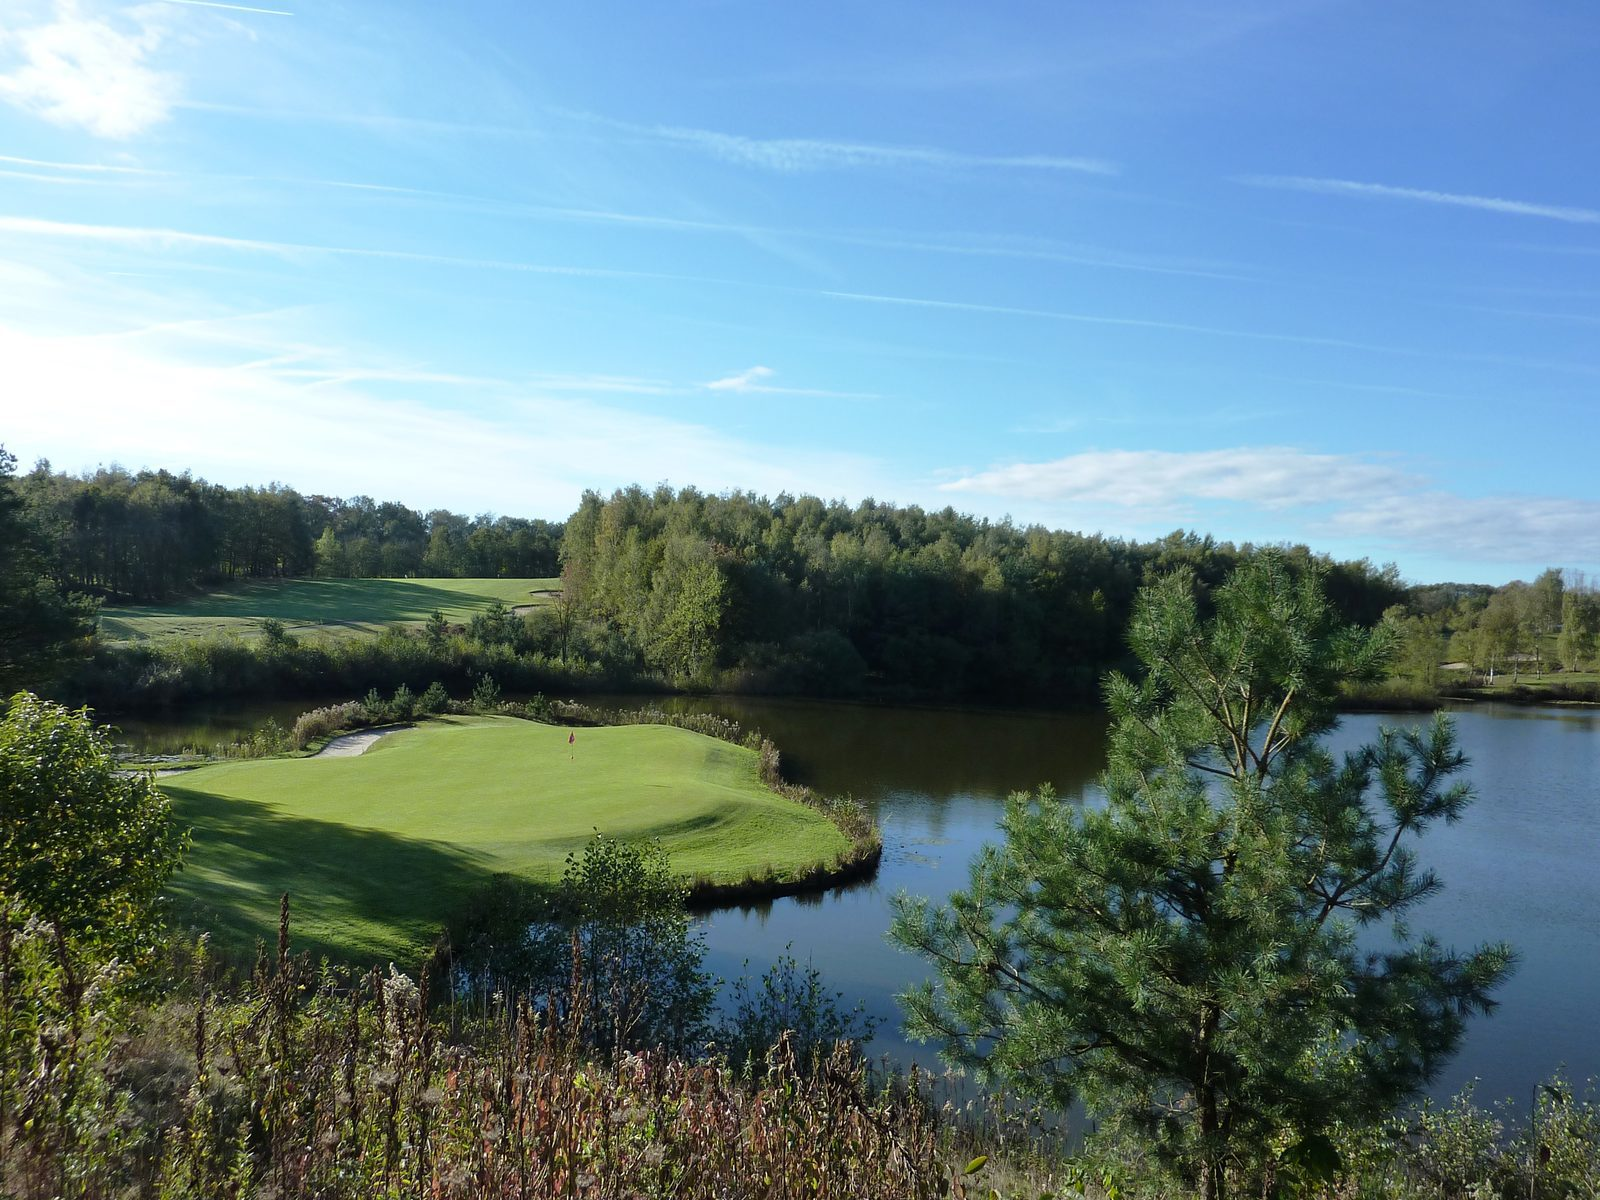 Golf course Brunsummerheide